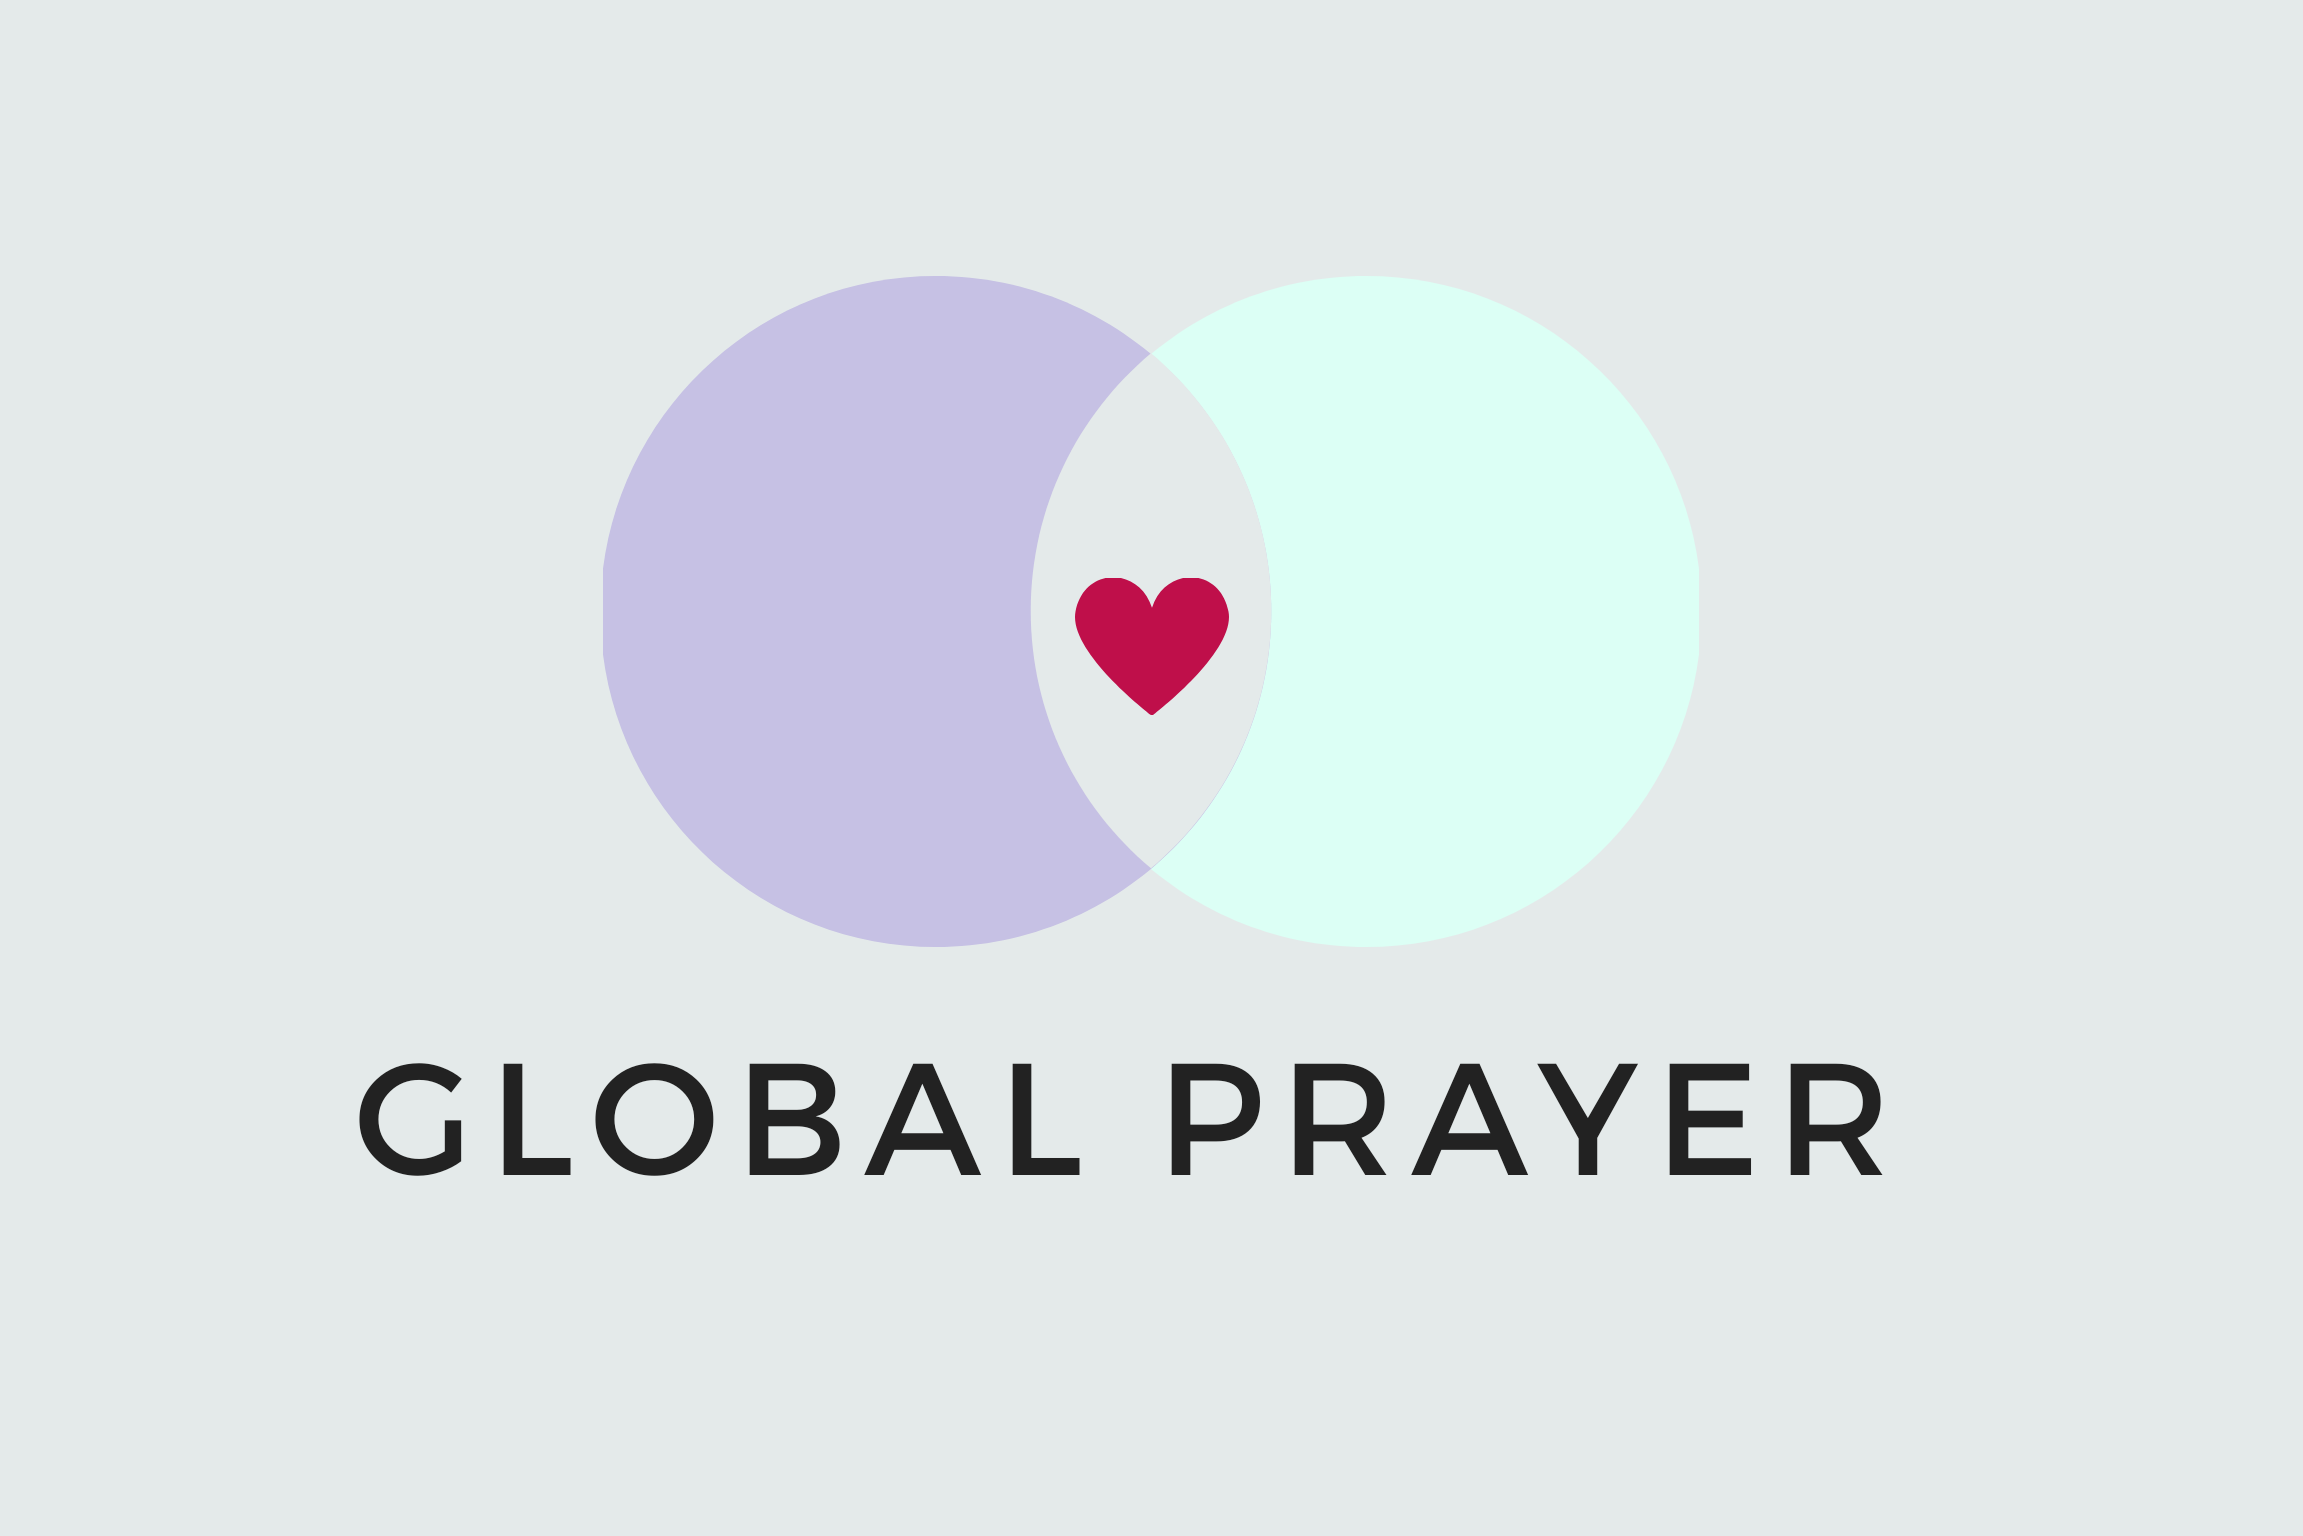 Global Prayer